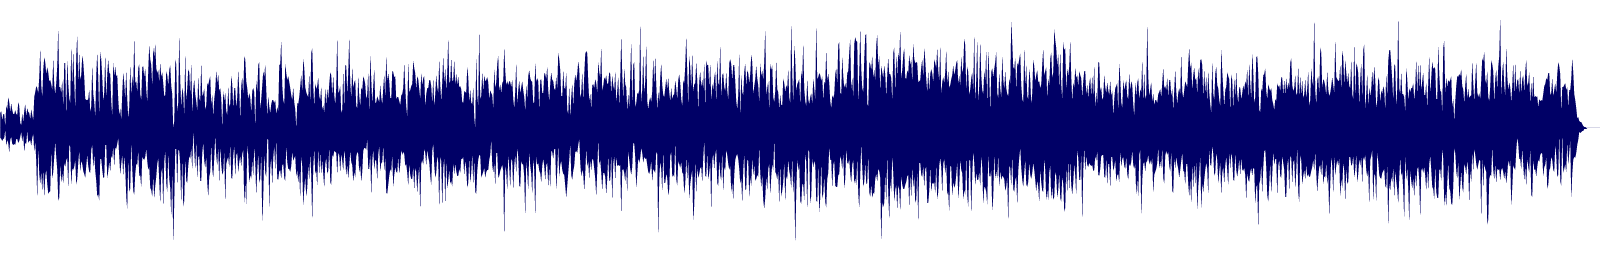 waveform of track #121837